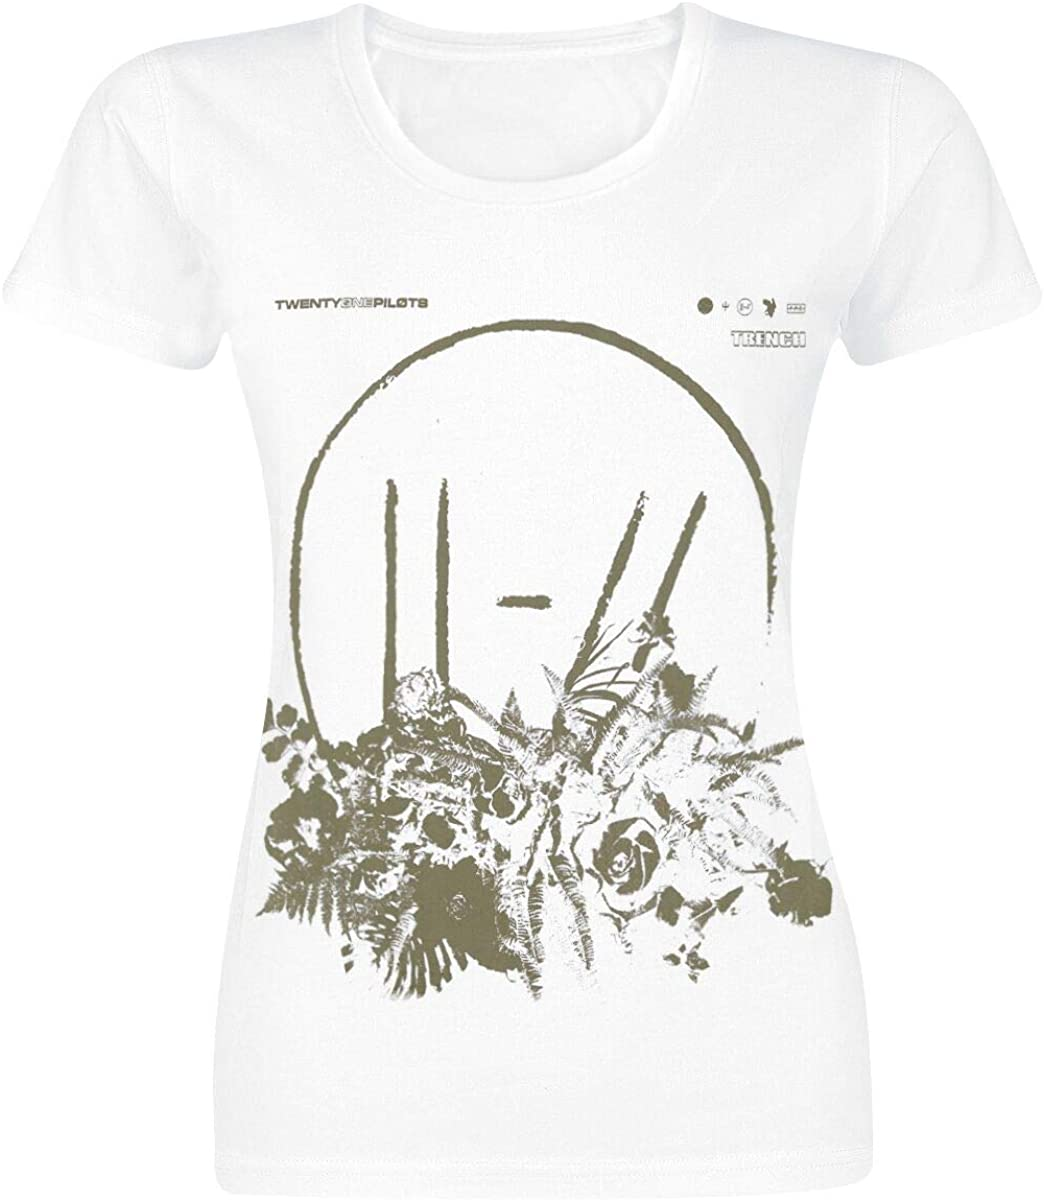 Twenty One Pilots Flower Bed Camiseta Blanco, Regular: Amazon.es: Ropa y accesorios